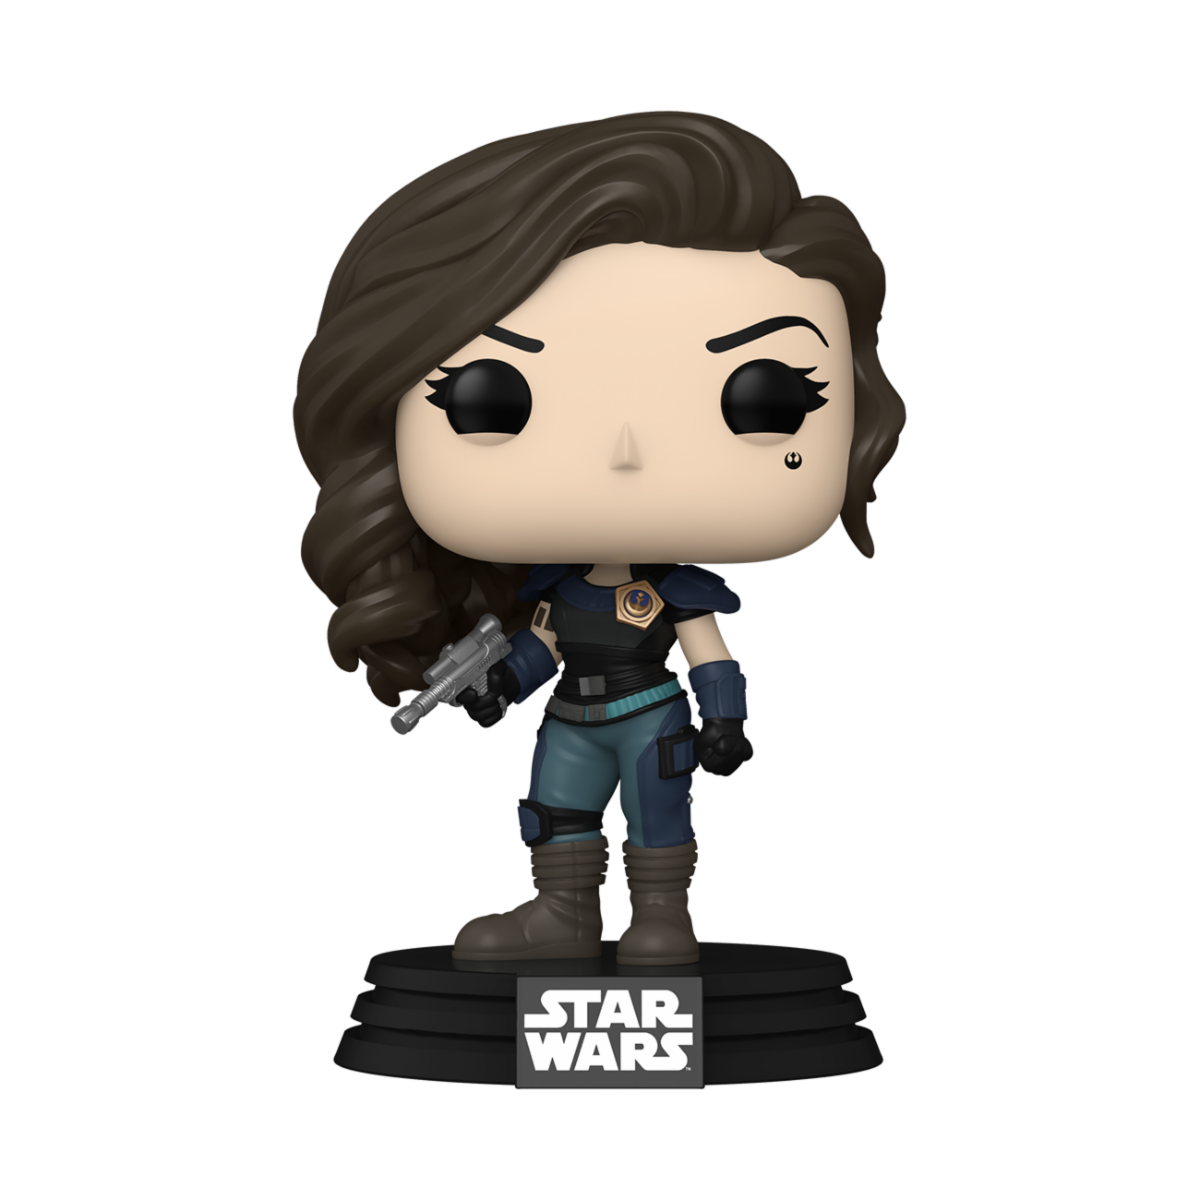 POP STAR WARS: THE MANDALORIAN - CARA DUNE WITH BLASTER